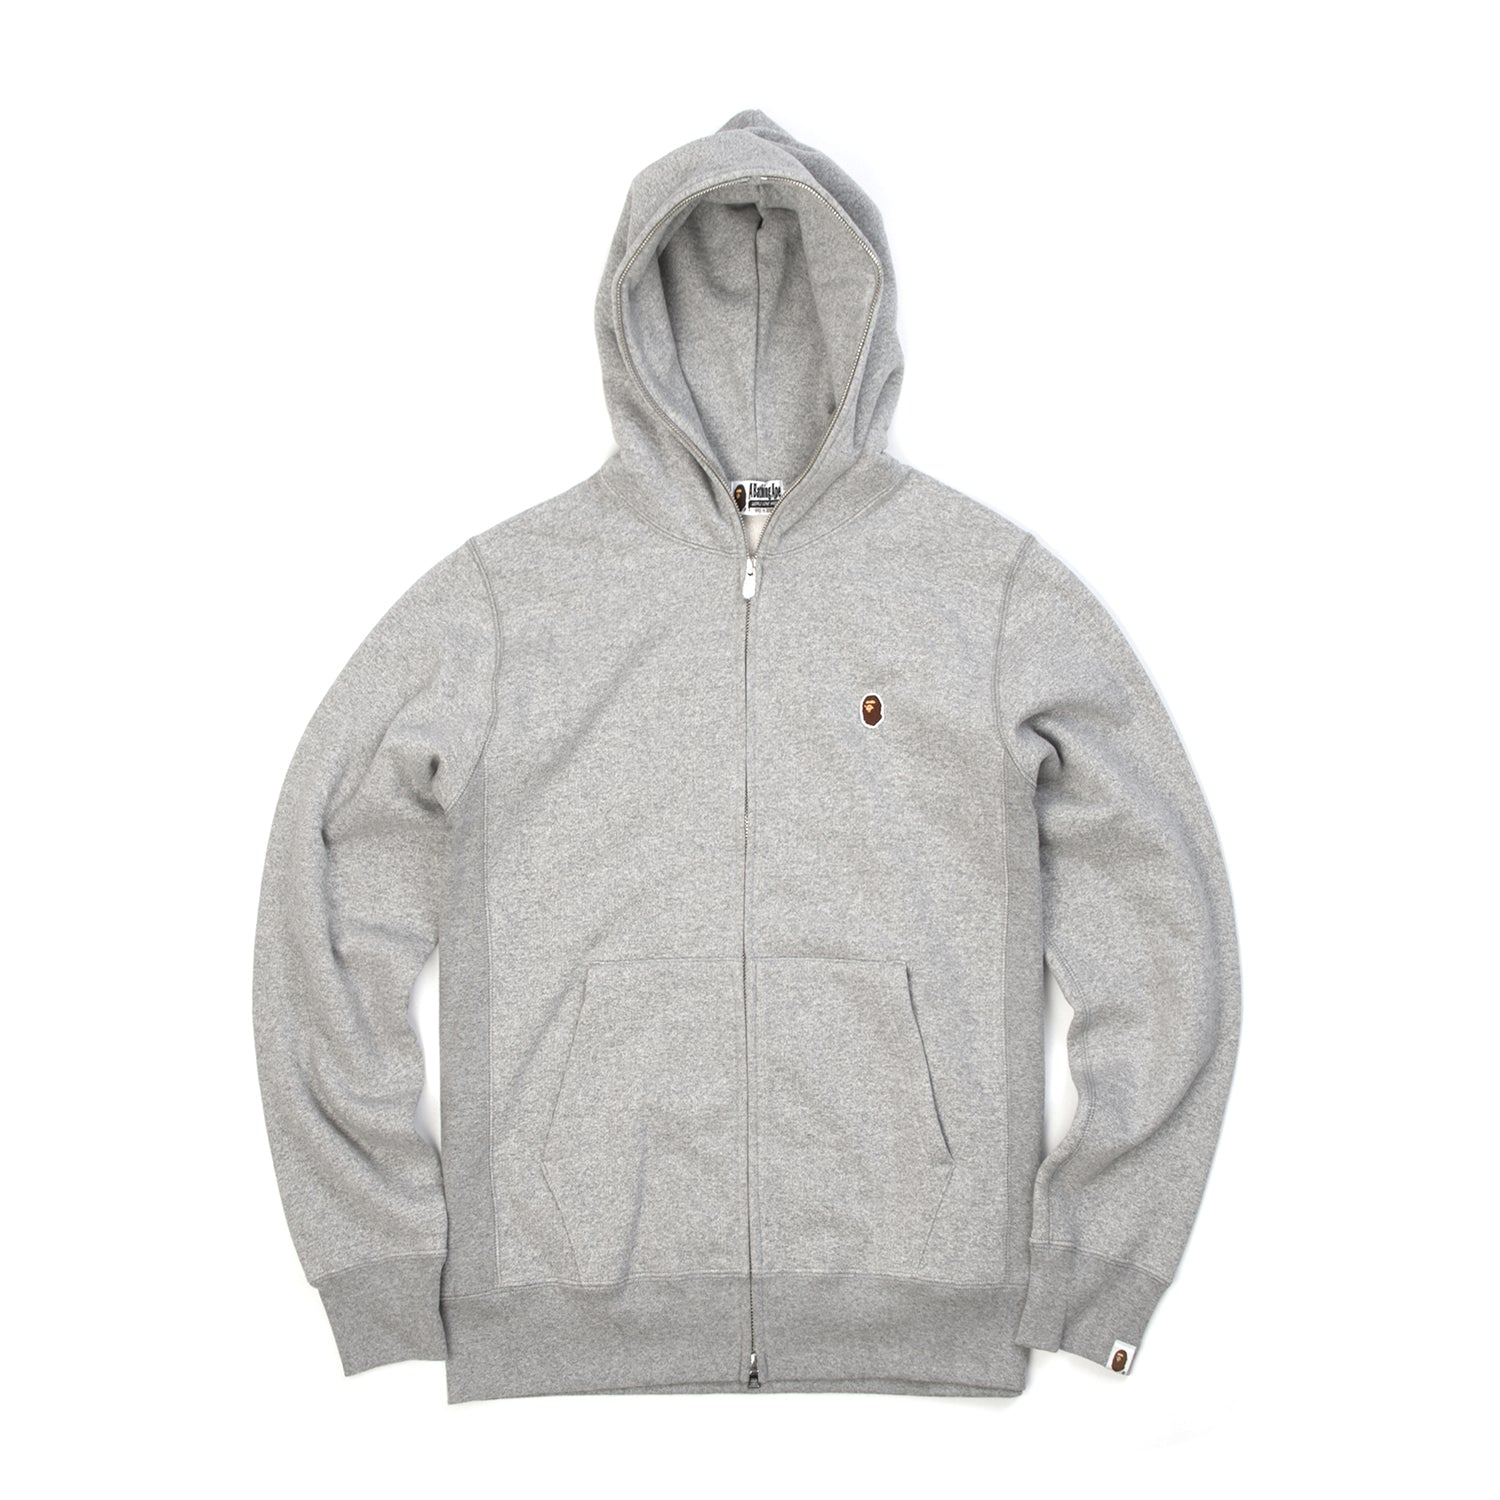 Bape Heavy Weight Full Zip Hoodie Grey